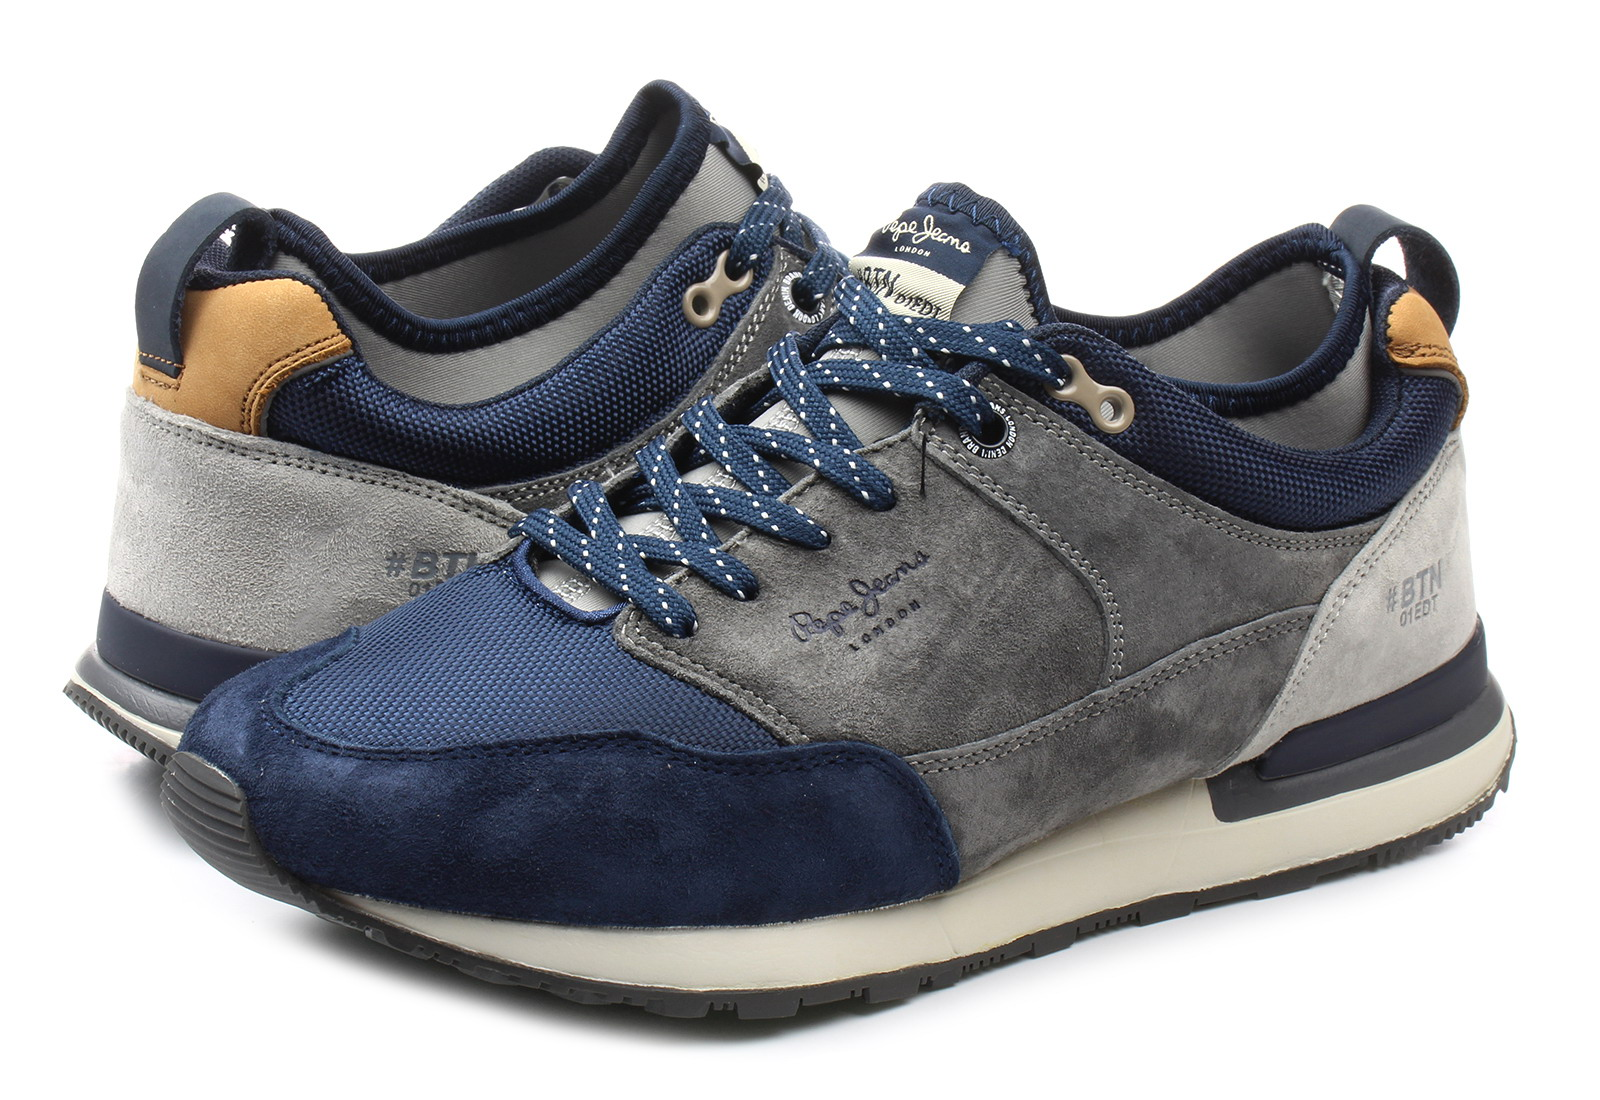 Pepe Jeans Shoes - Btn - PMS30474595 - Online shop for sneakers ... 1fa1b4c809